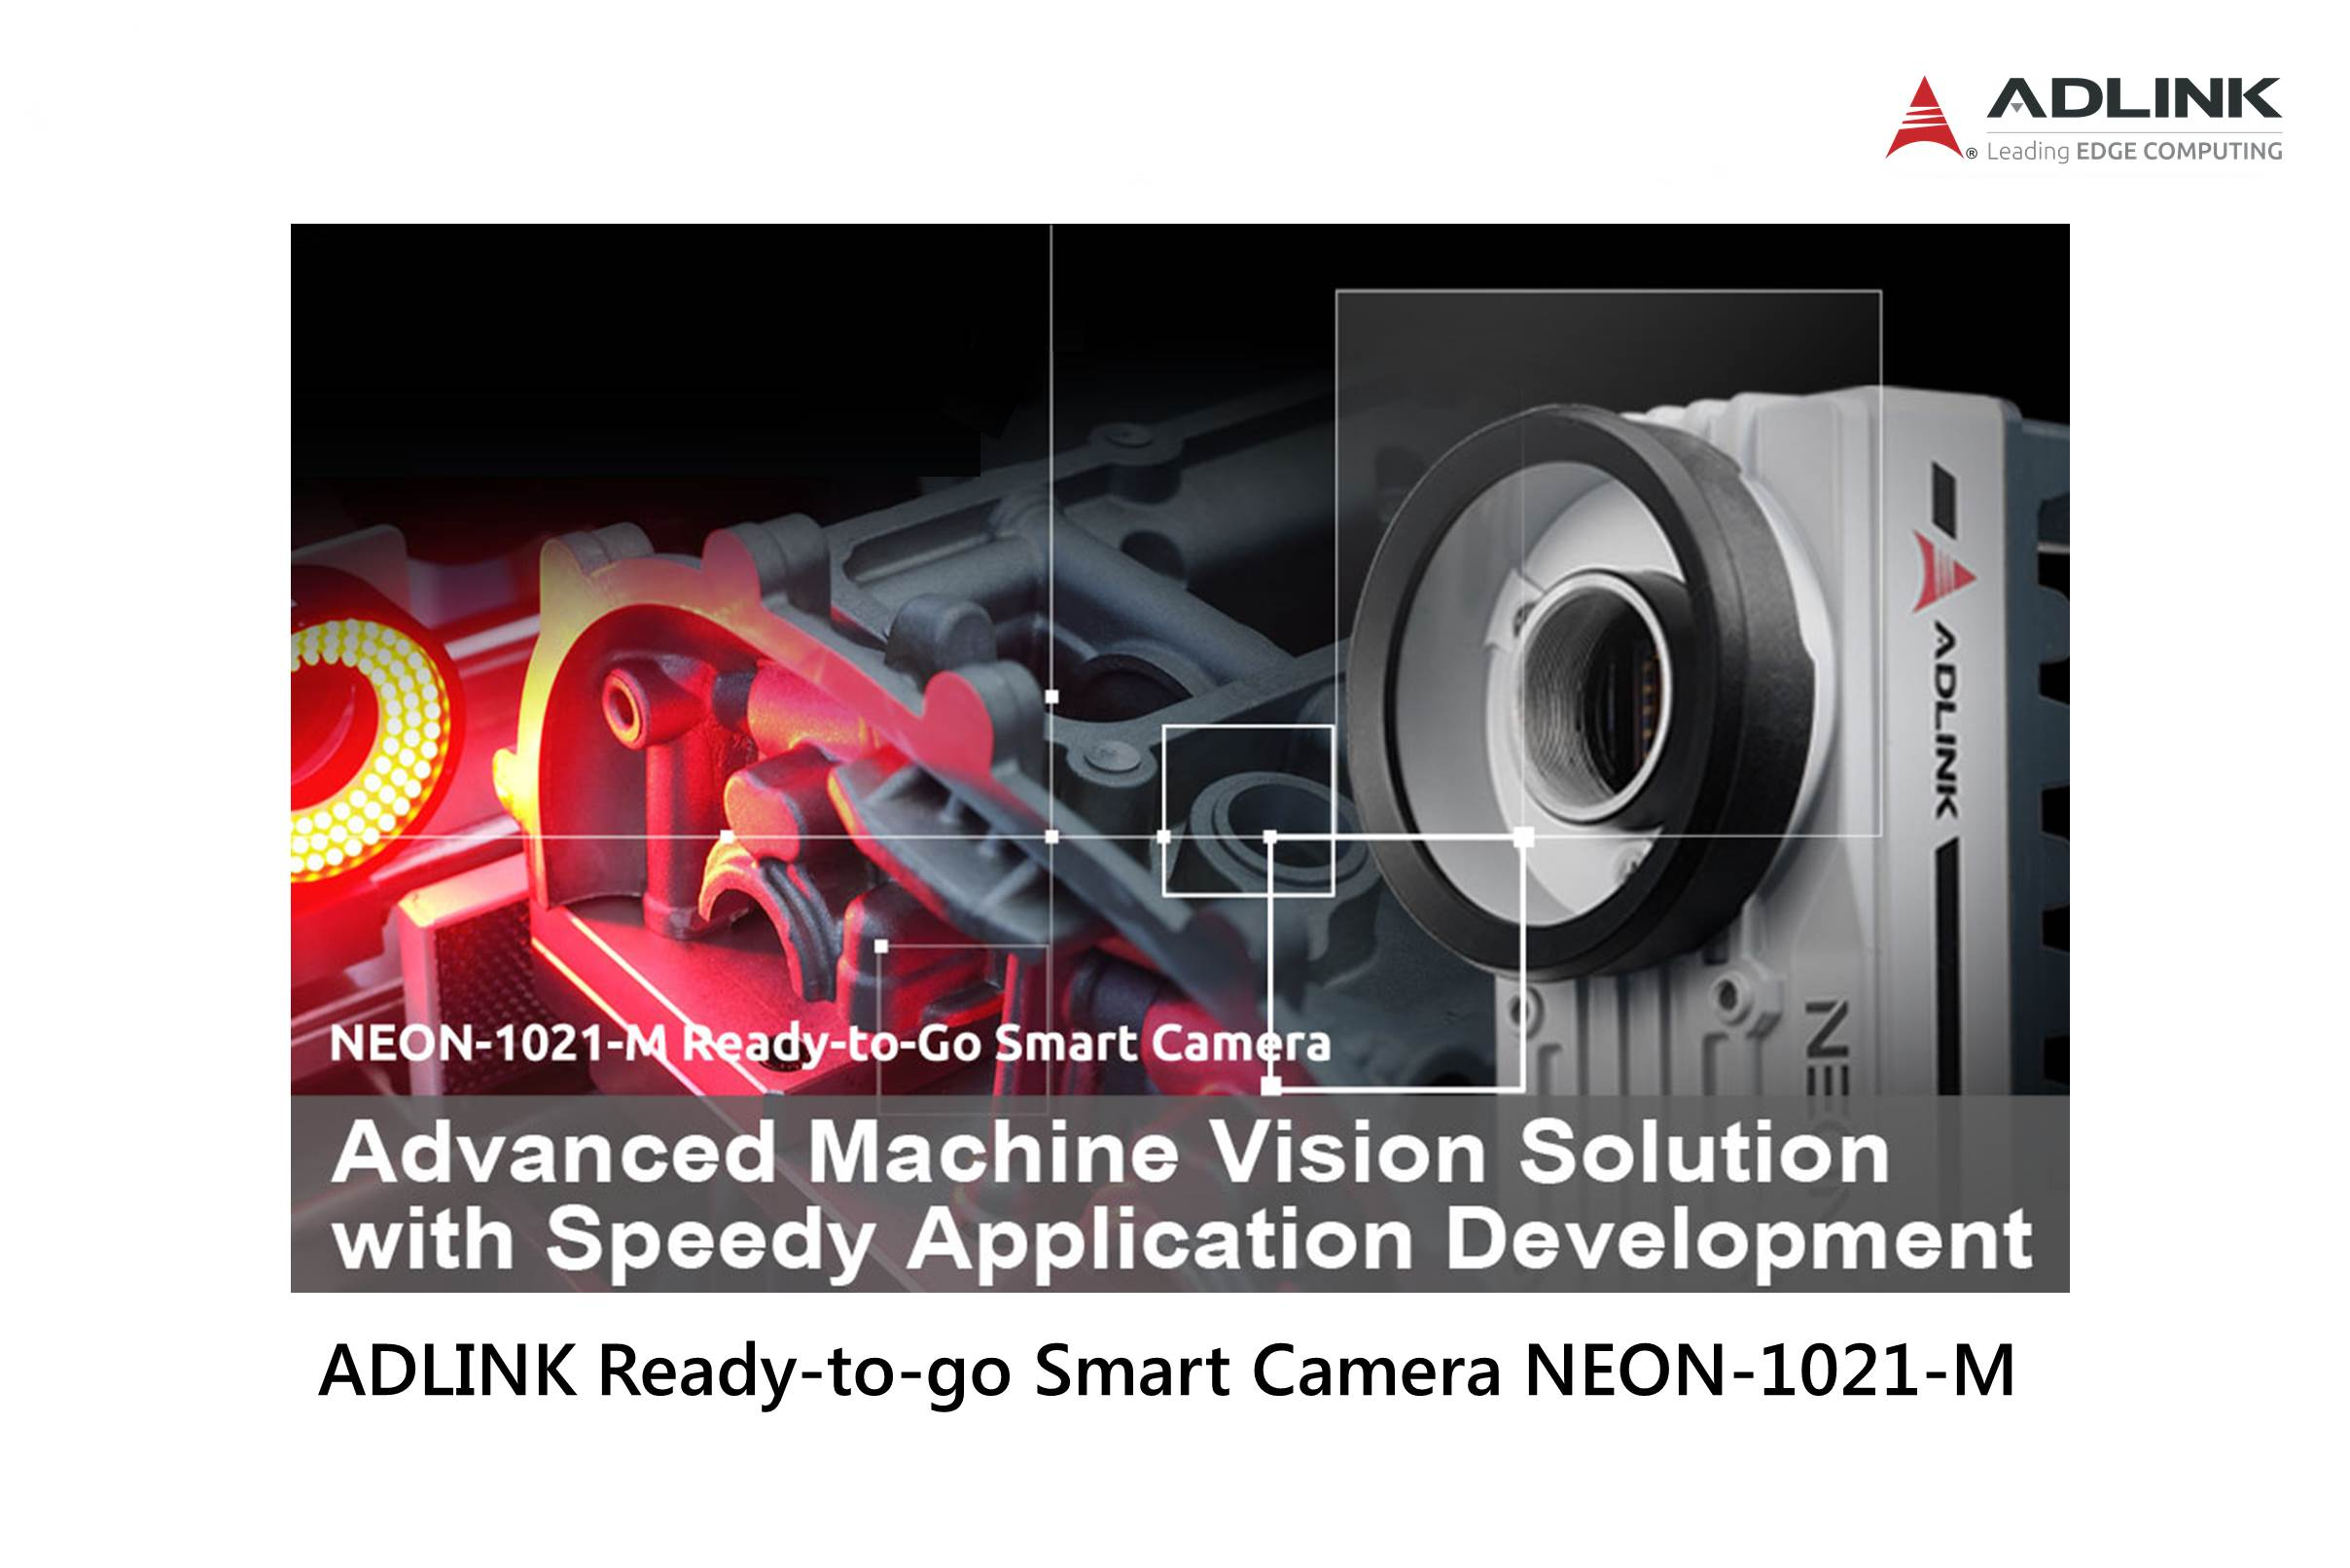 ADLINK Ready-to-go Smart Camera NEON-1021-M